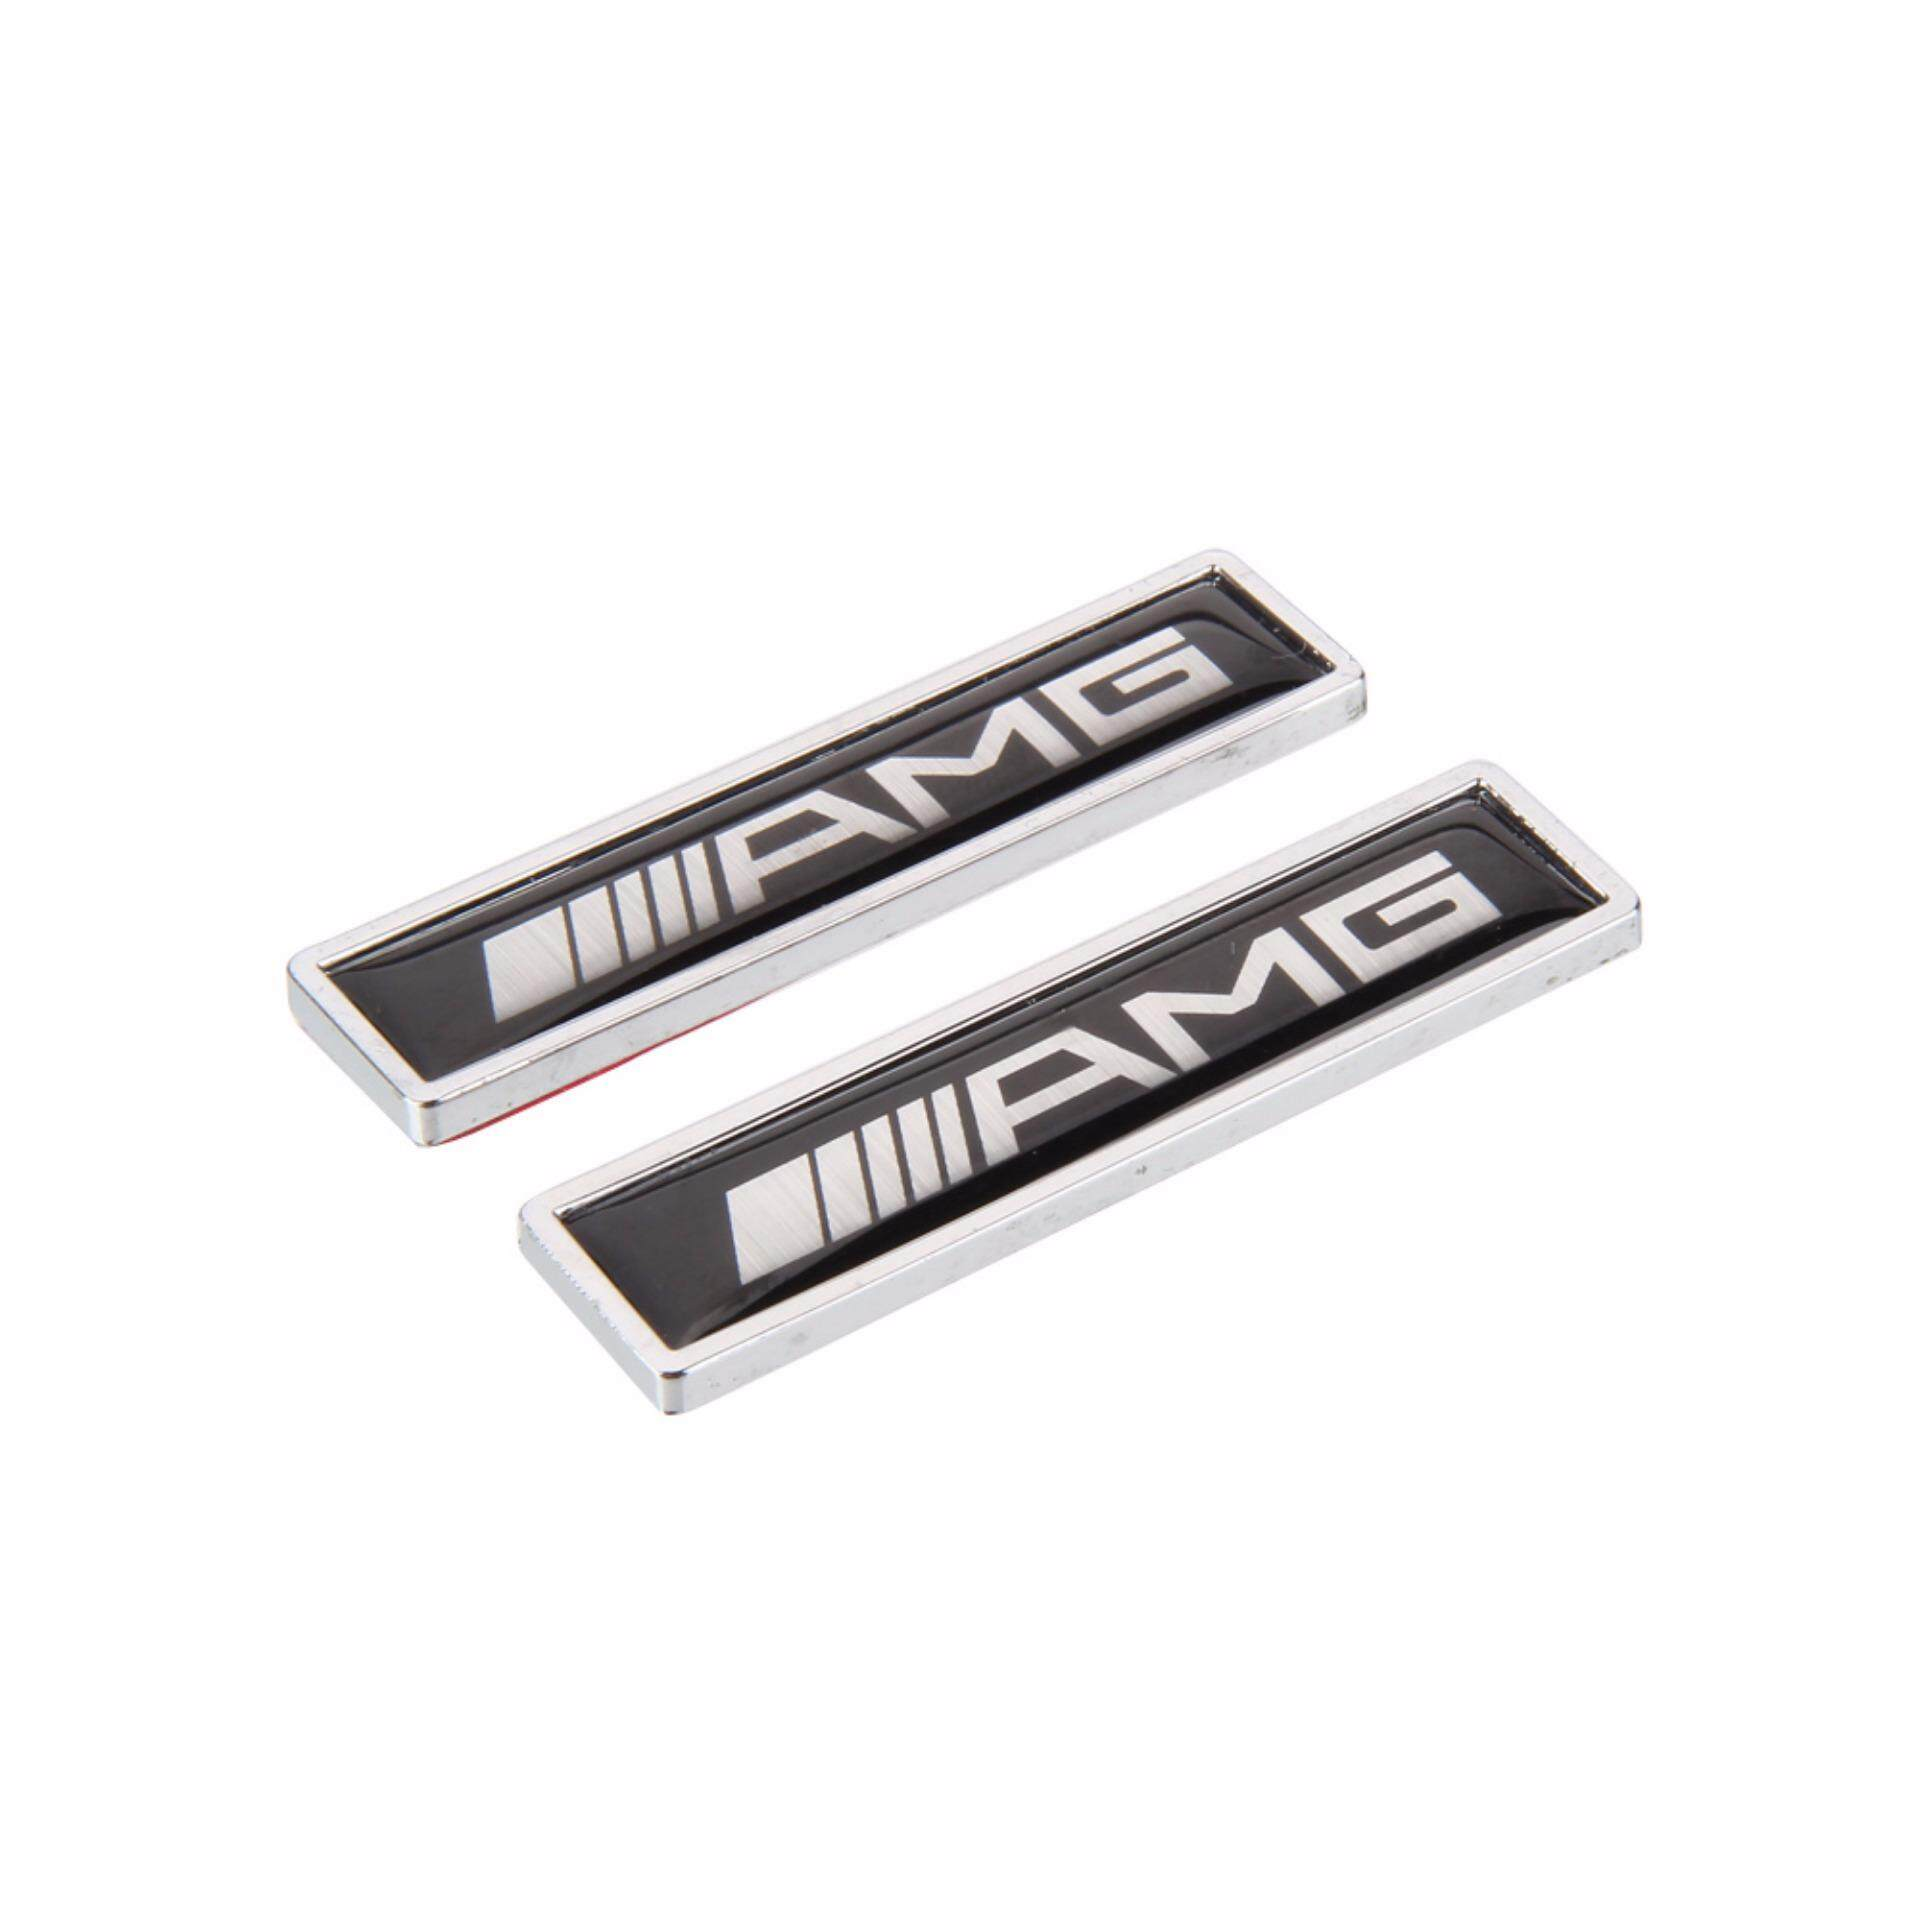 Features 1 Pair 3d Blade Styling Car Logo Stickers Auto Decoration Harga Wiring Harness W124 Metal Modification Sticker Decorative Emblem Badge Decal For Amg W204 W203 W211 W210